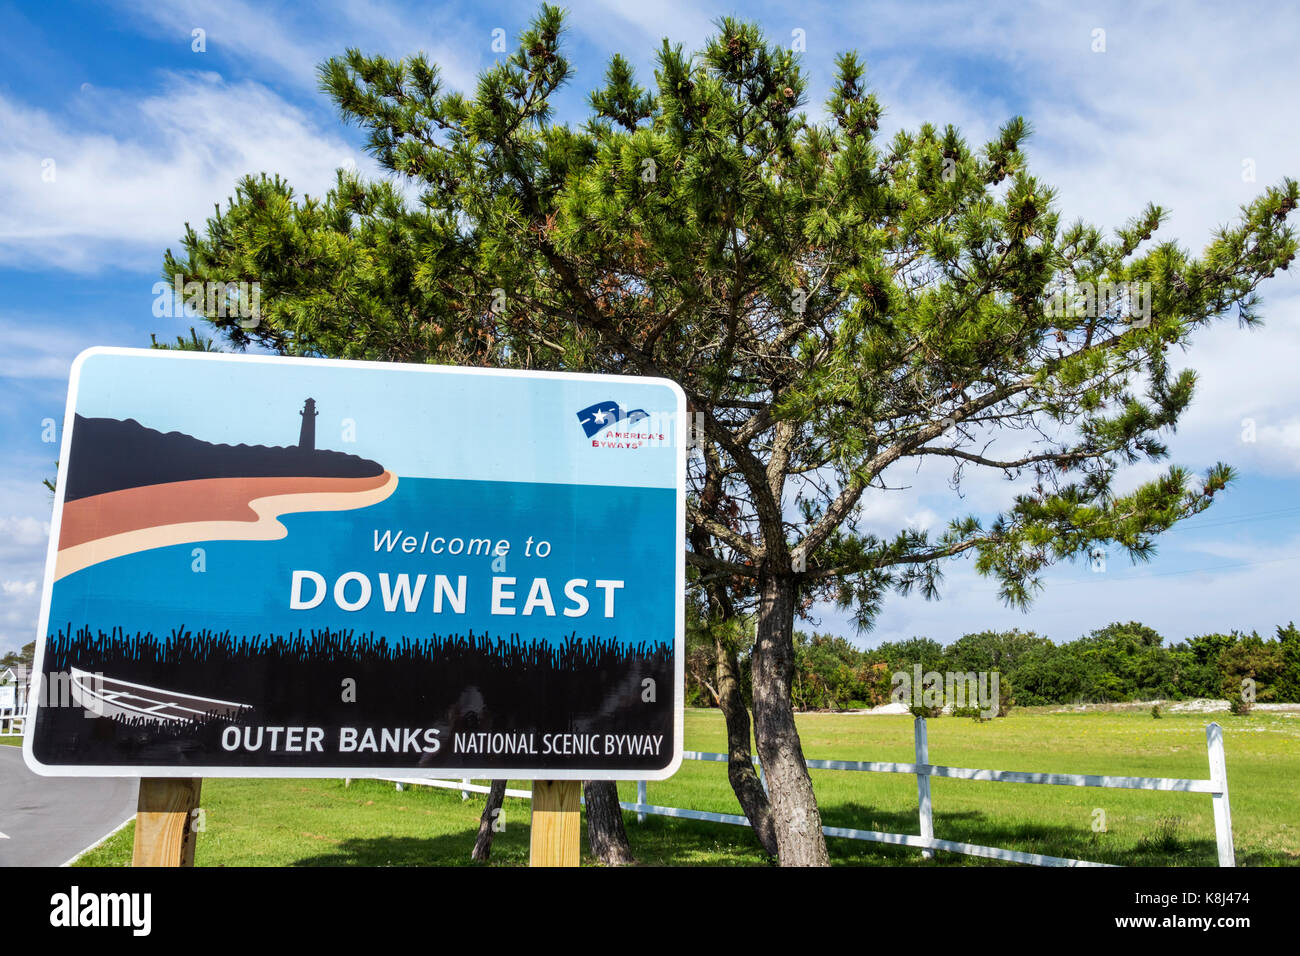 North Carolina NC Cedar Island Down East Outer Banks National Scenic Byway sign - Stock Image